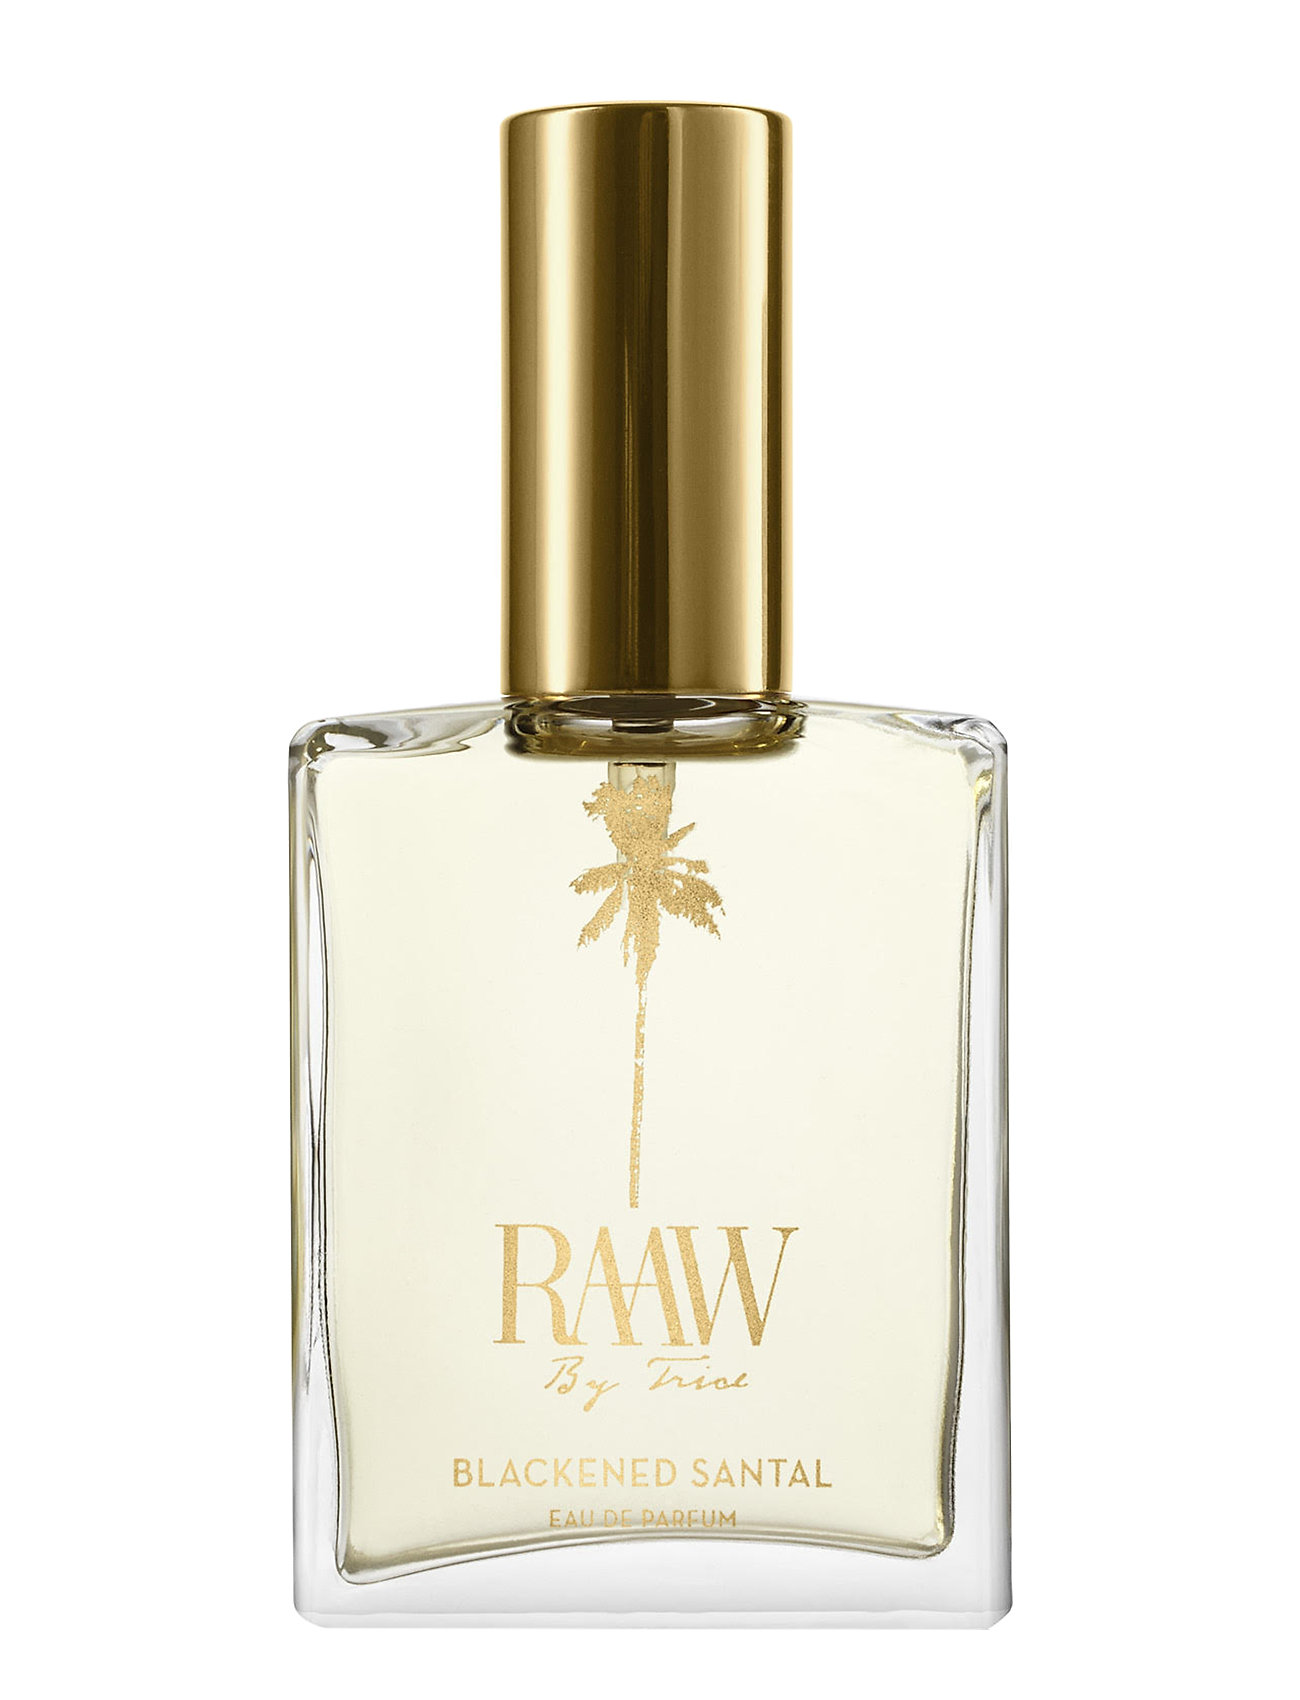 Raaw by Trice blackened Santal Eau de Parfum - NO COLOR